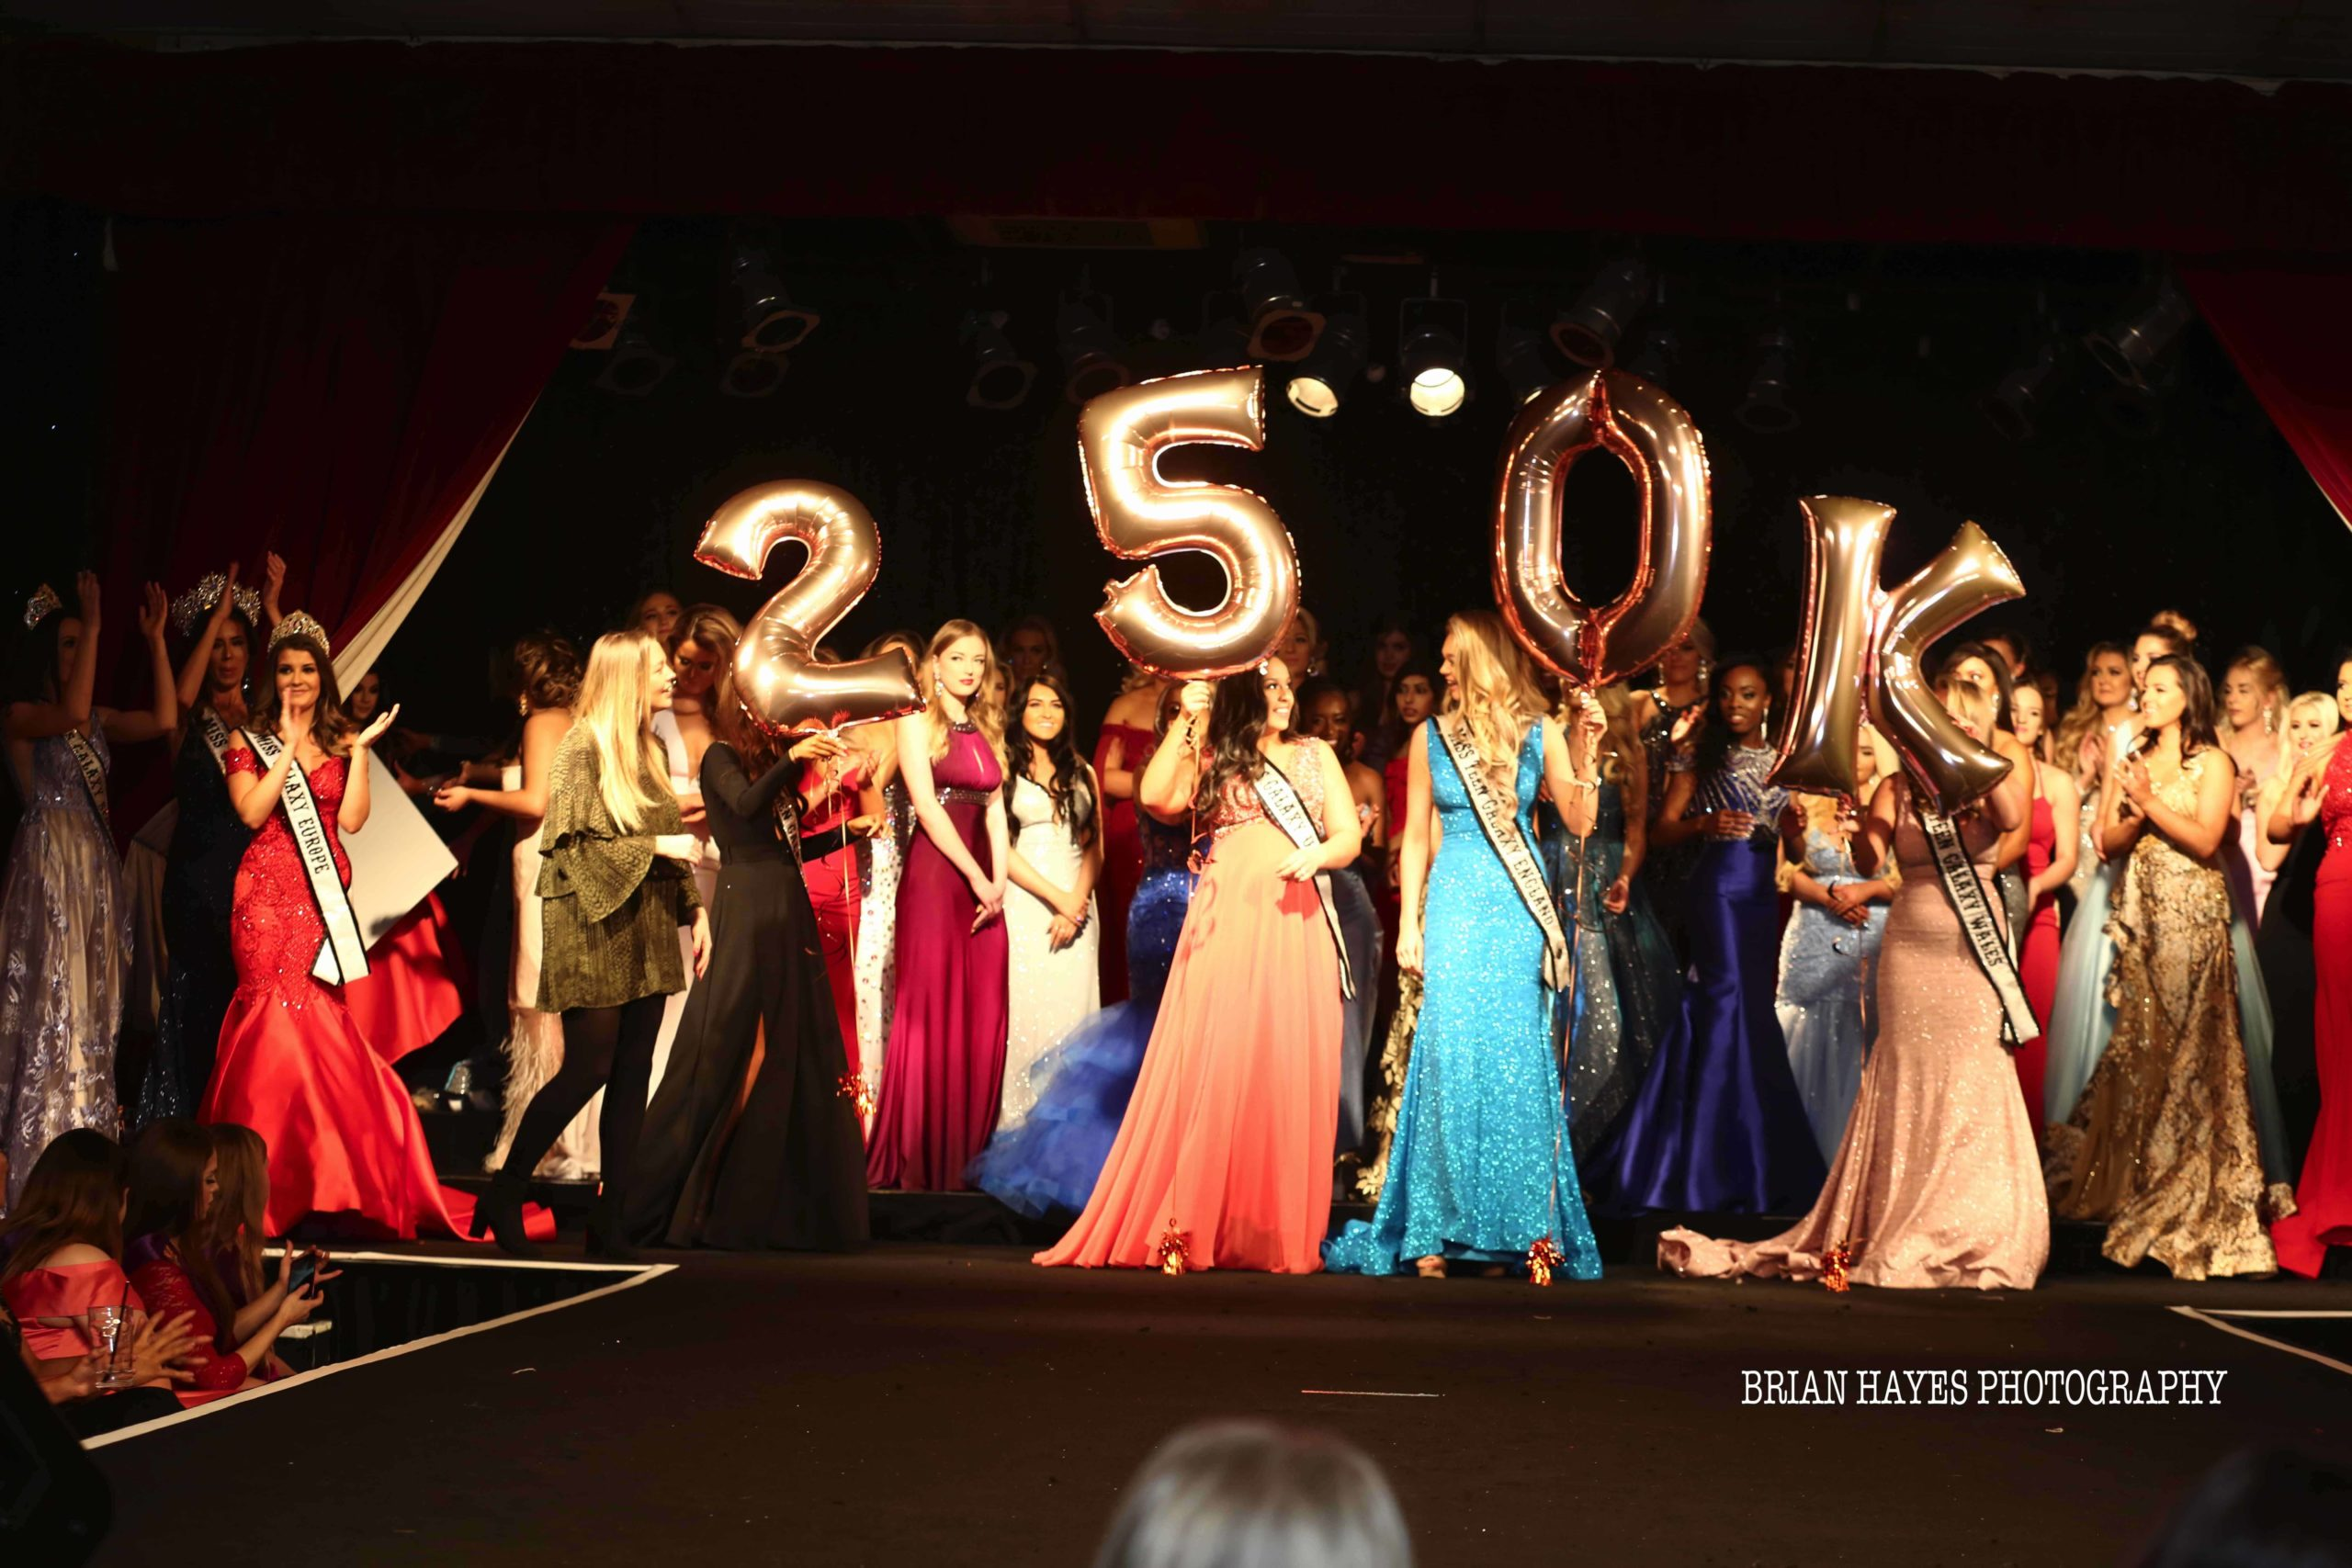 The 2019 UK Galaxy Pageants raised over £43,000 for The Christie!